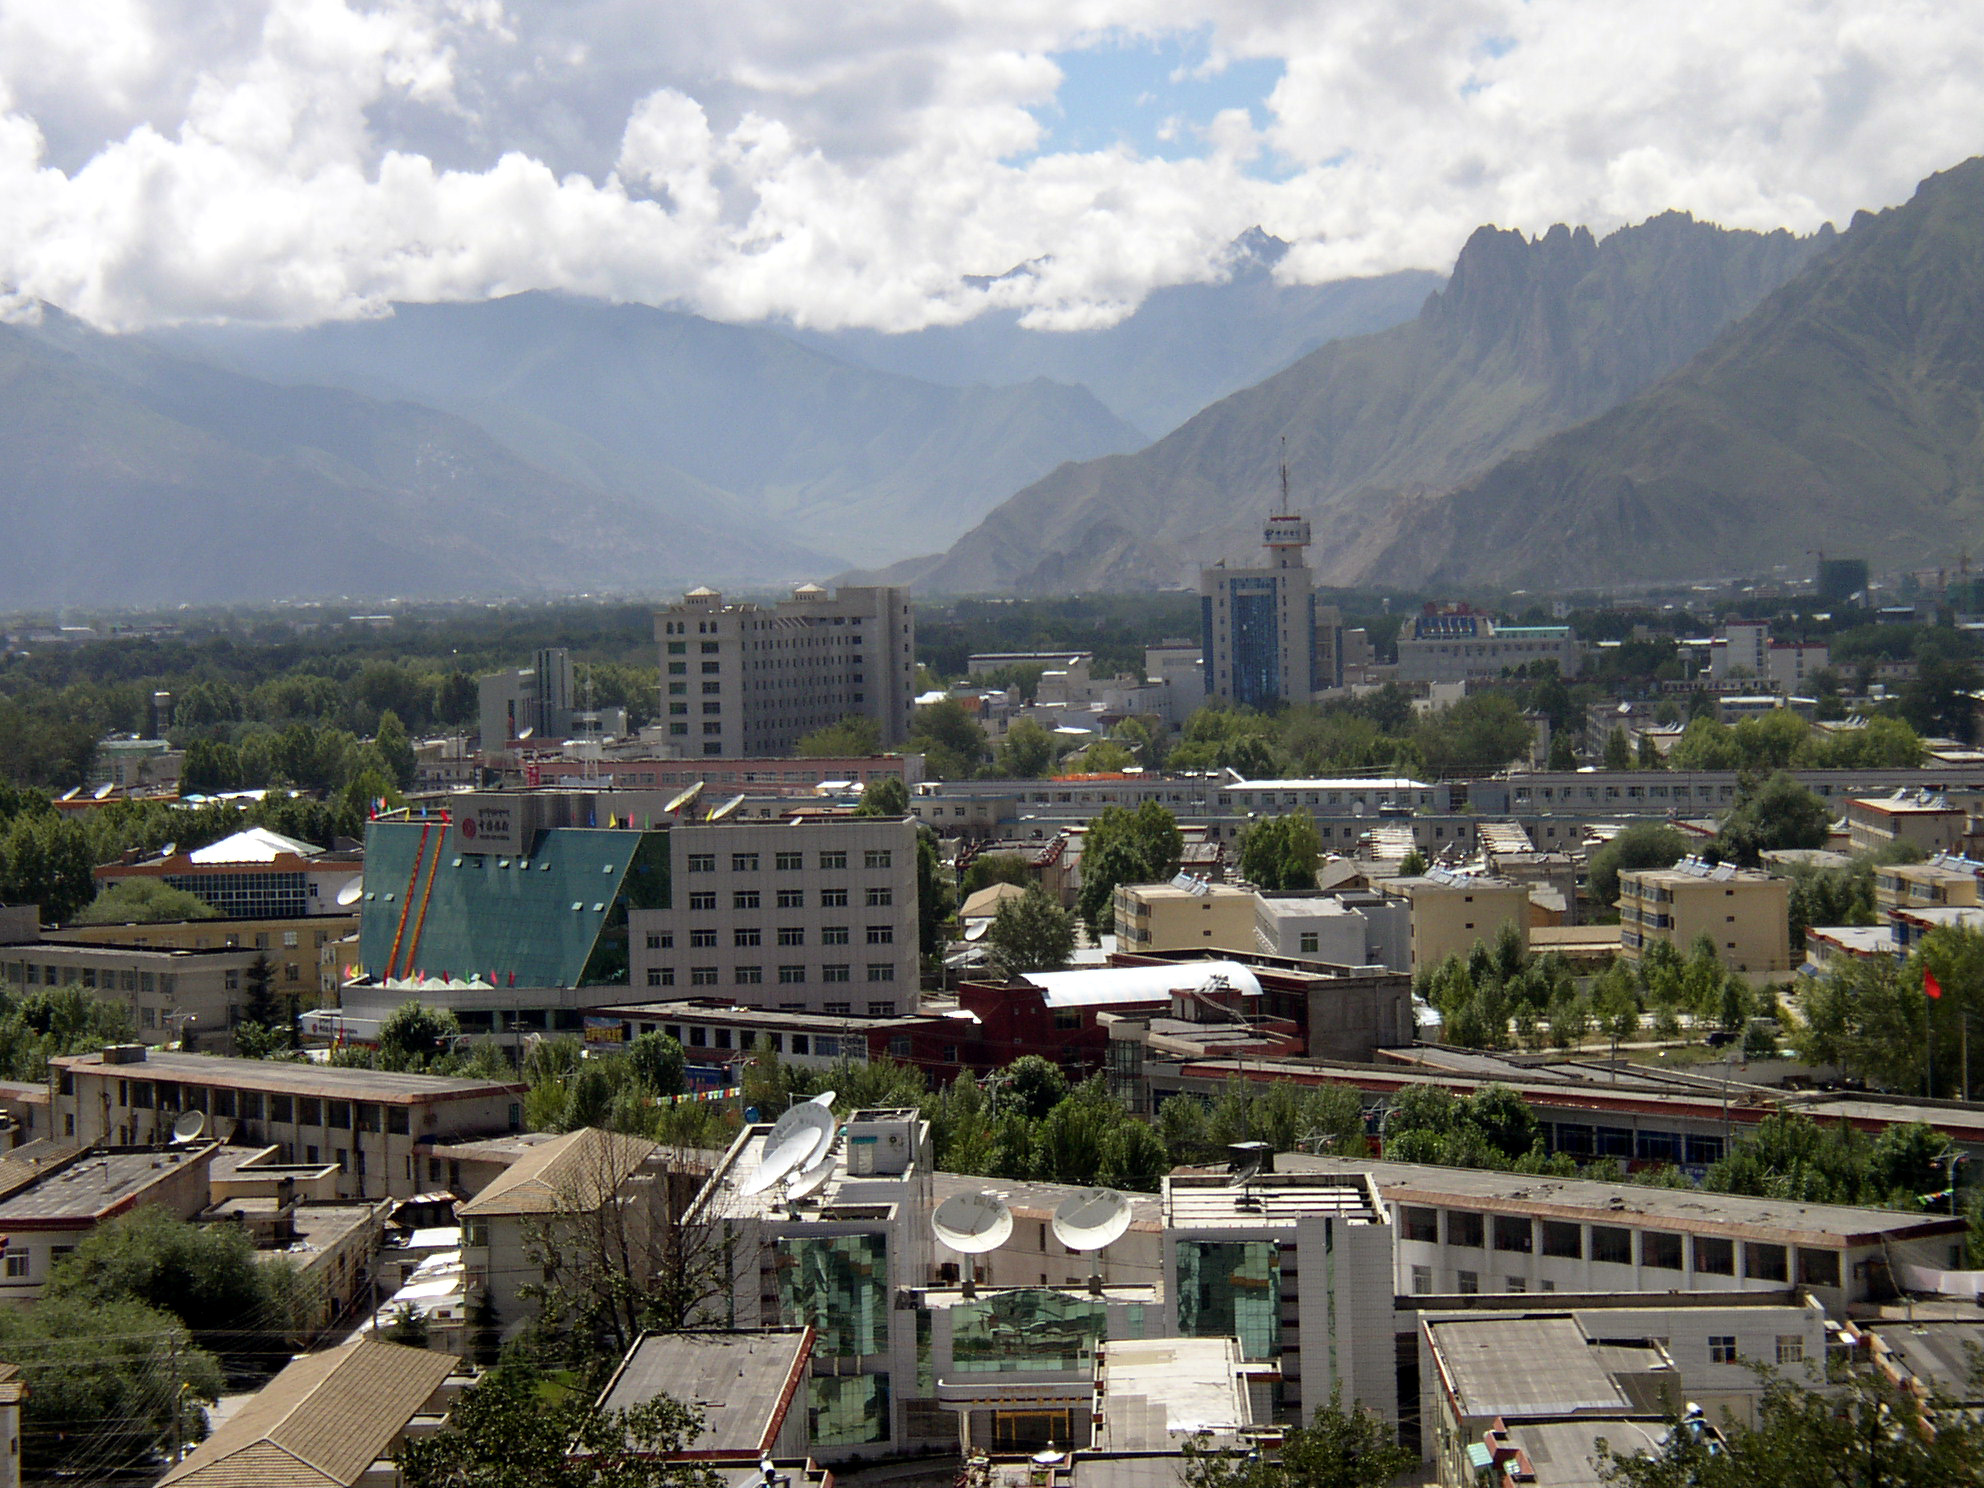 Lhasa China  City pictures : CHINA PEOPLE'S REPUBLIC OF CHINA PAX GAEA COUNTRY REPORT